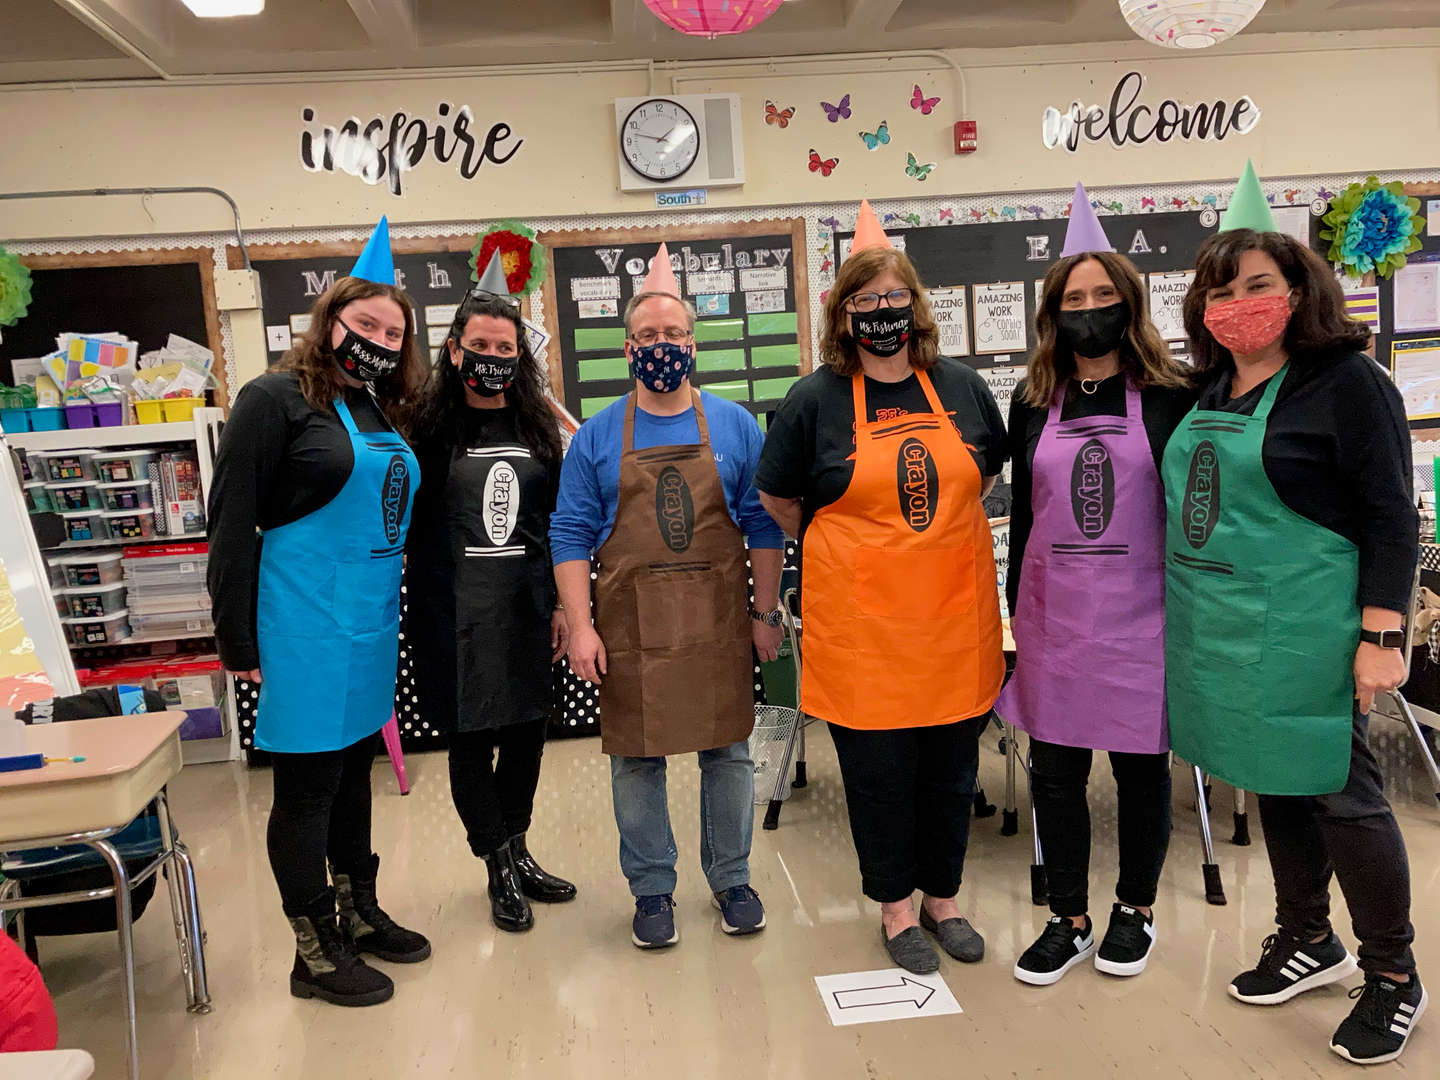 Staff is posing in their crayon costumes